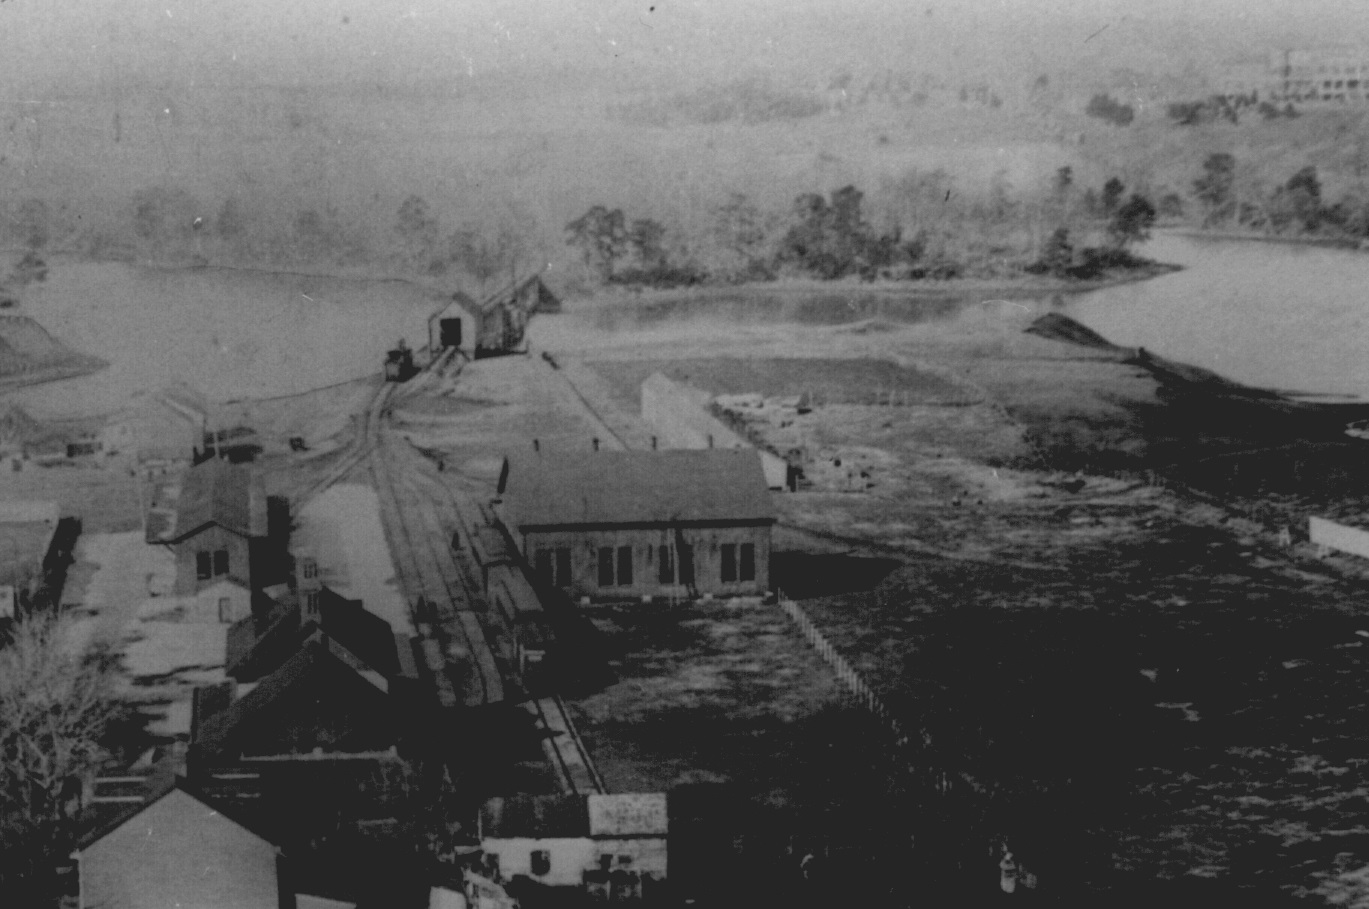 Looking down on Bladen Street Station from the Maryland State House. Annapolis, Maryland. Circa 1887. Source: Maryland State Archives.